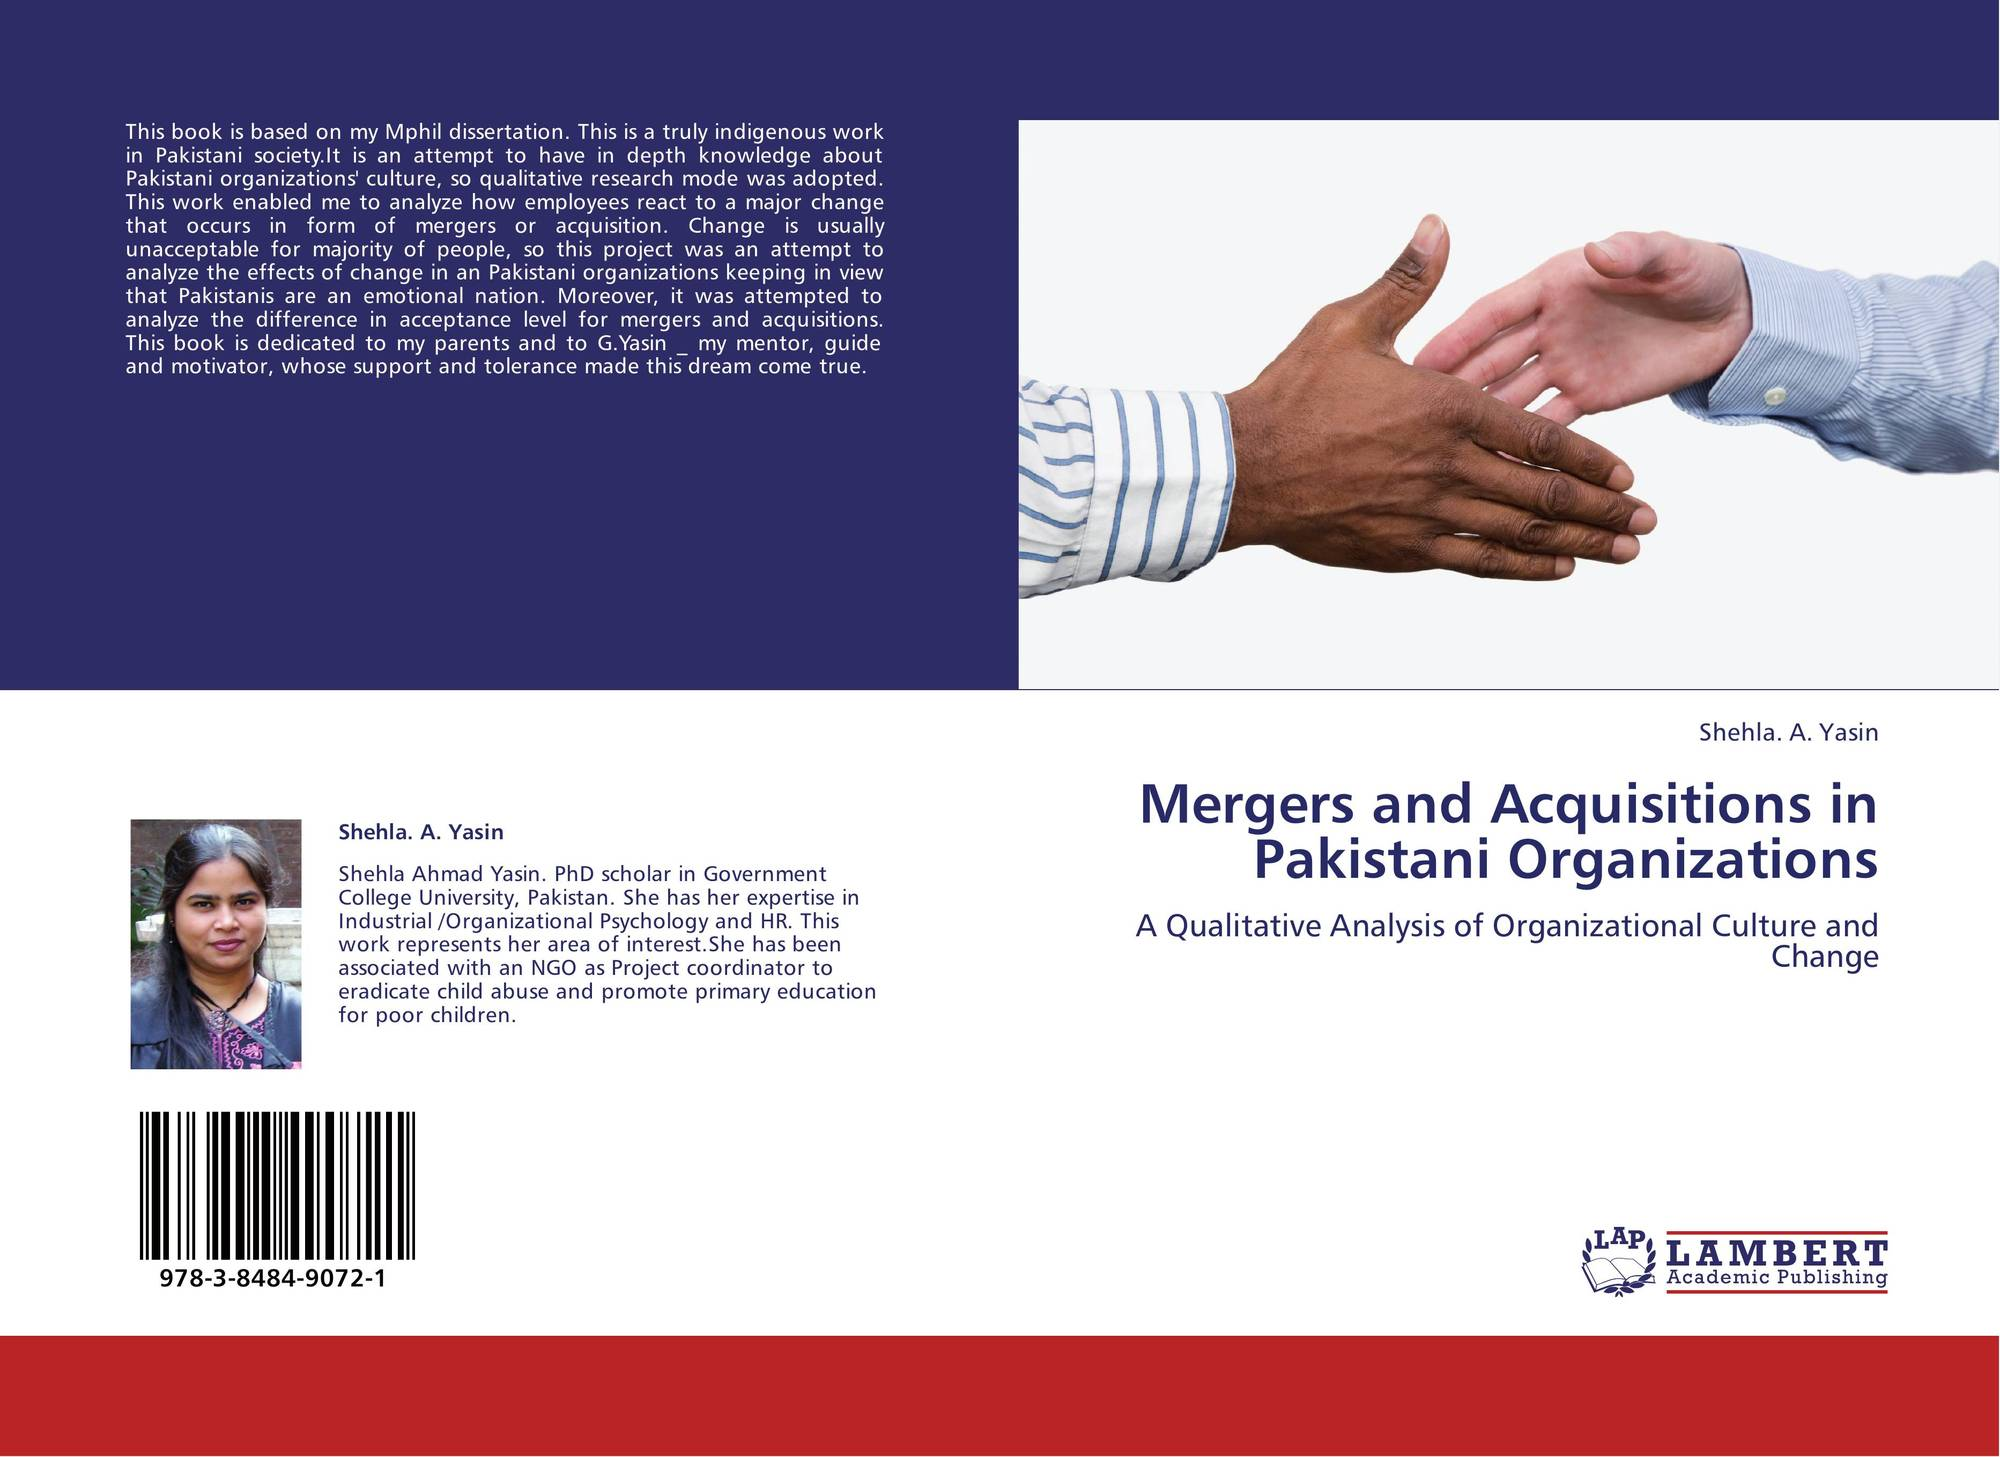 thesis on economics in pakistan Good topics for economic research papers: current problems you can analyze selecting a topic for a research paper often proves harder than writing the paper itself economics is a vast and interesting subject.